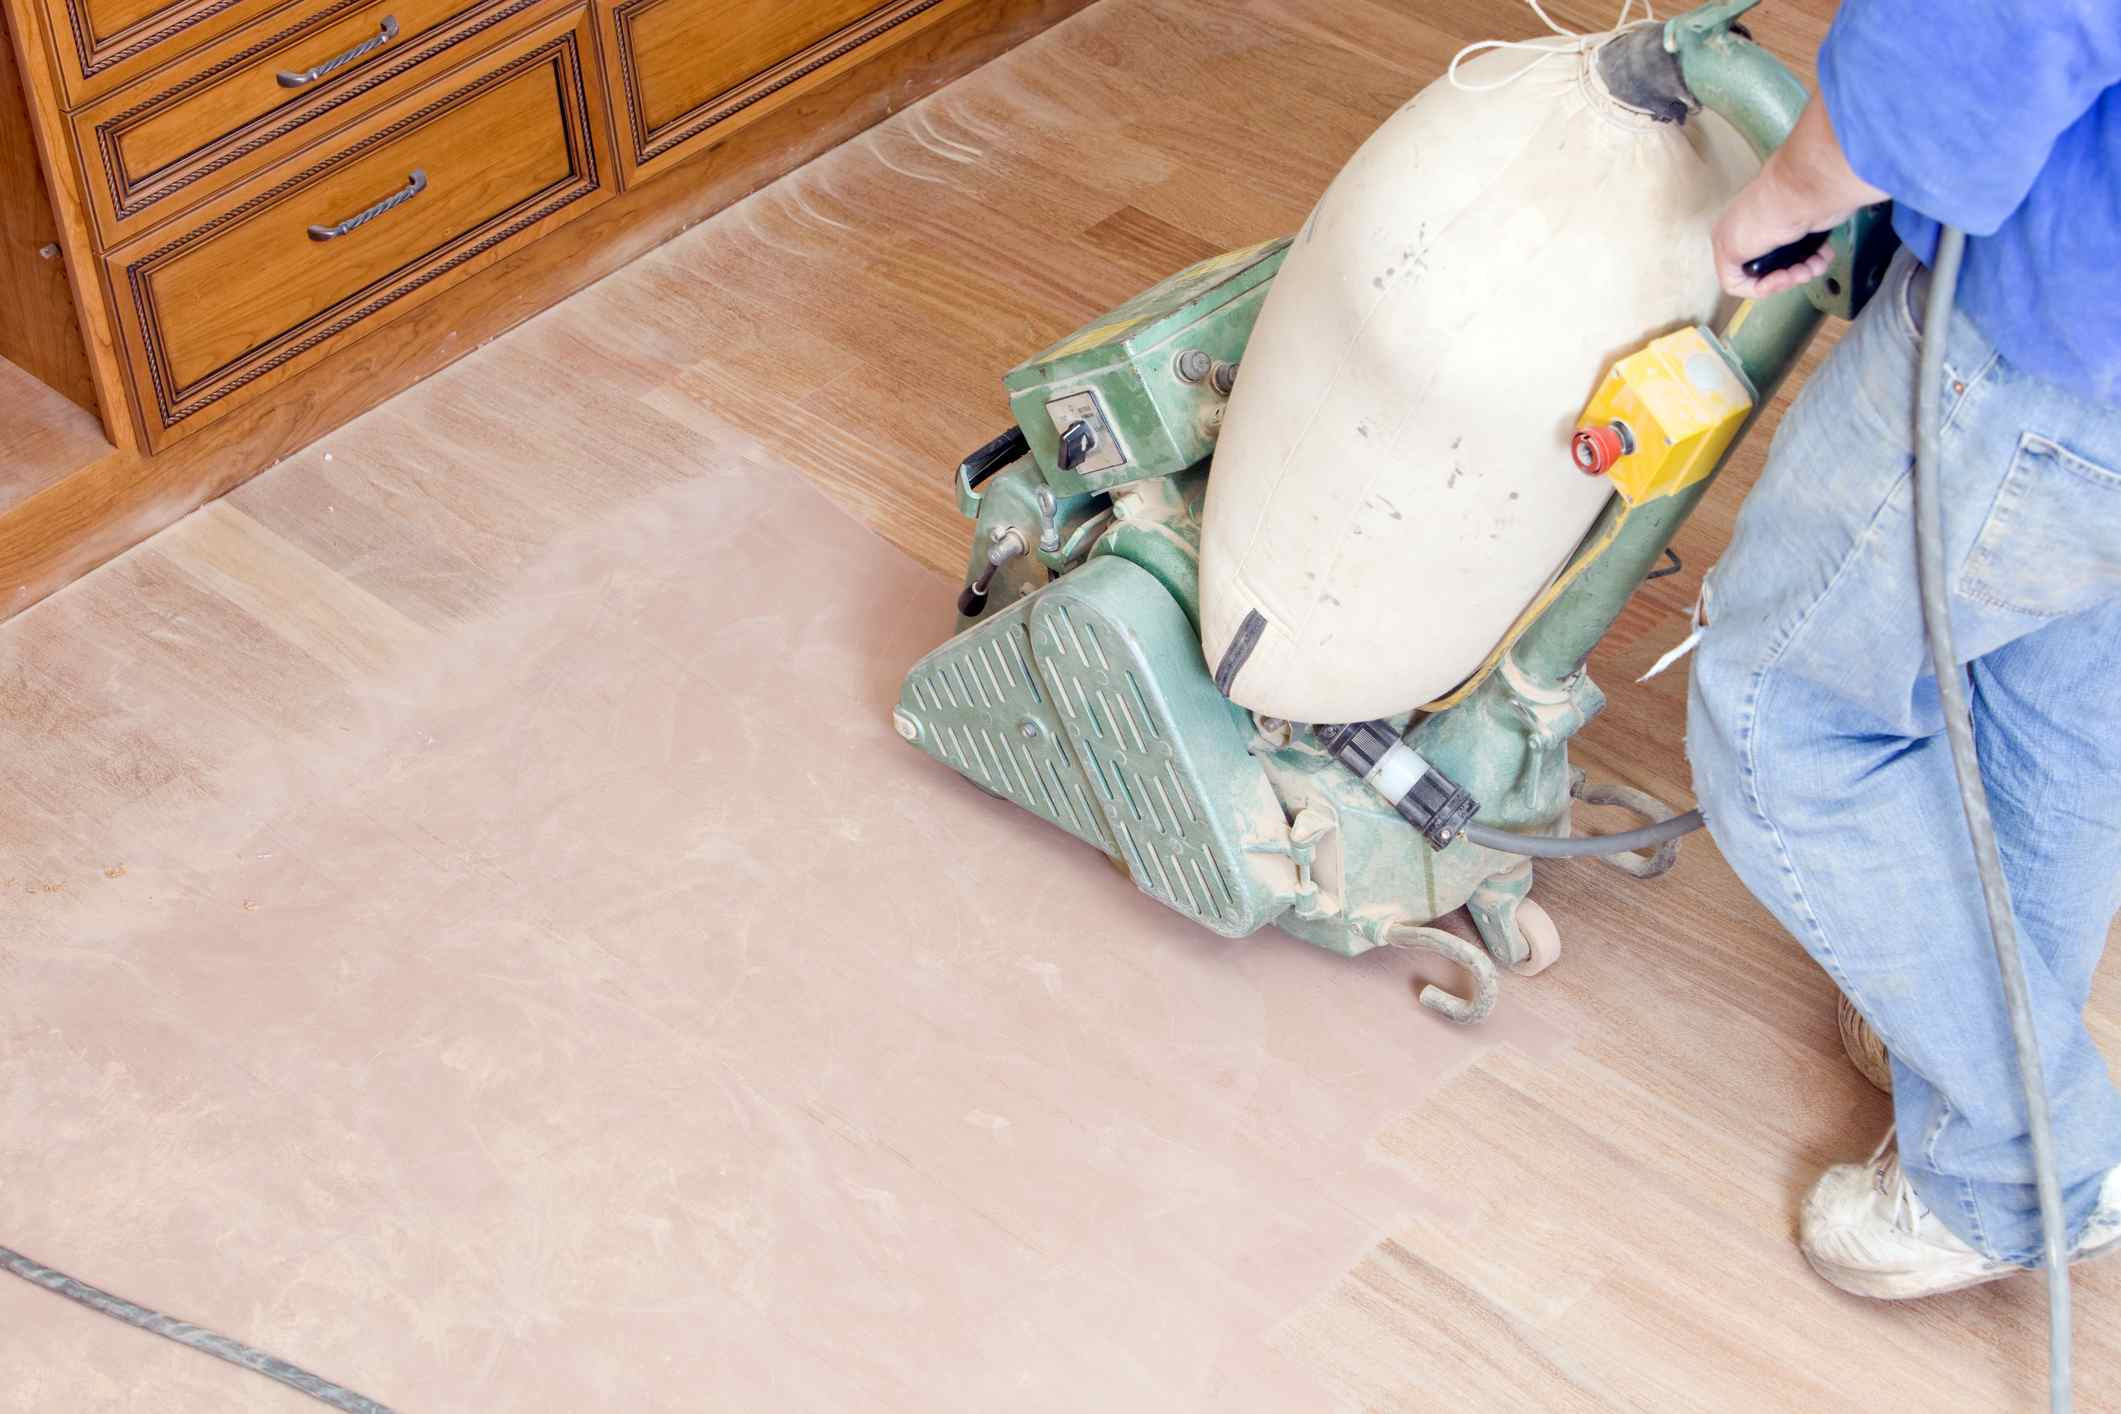 sanding new hardwood floors yourself of how to sand hardwood floors with gettyimages 183776482 587b01375f9b584db3a41541